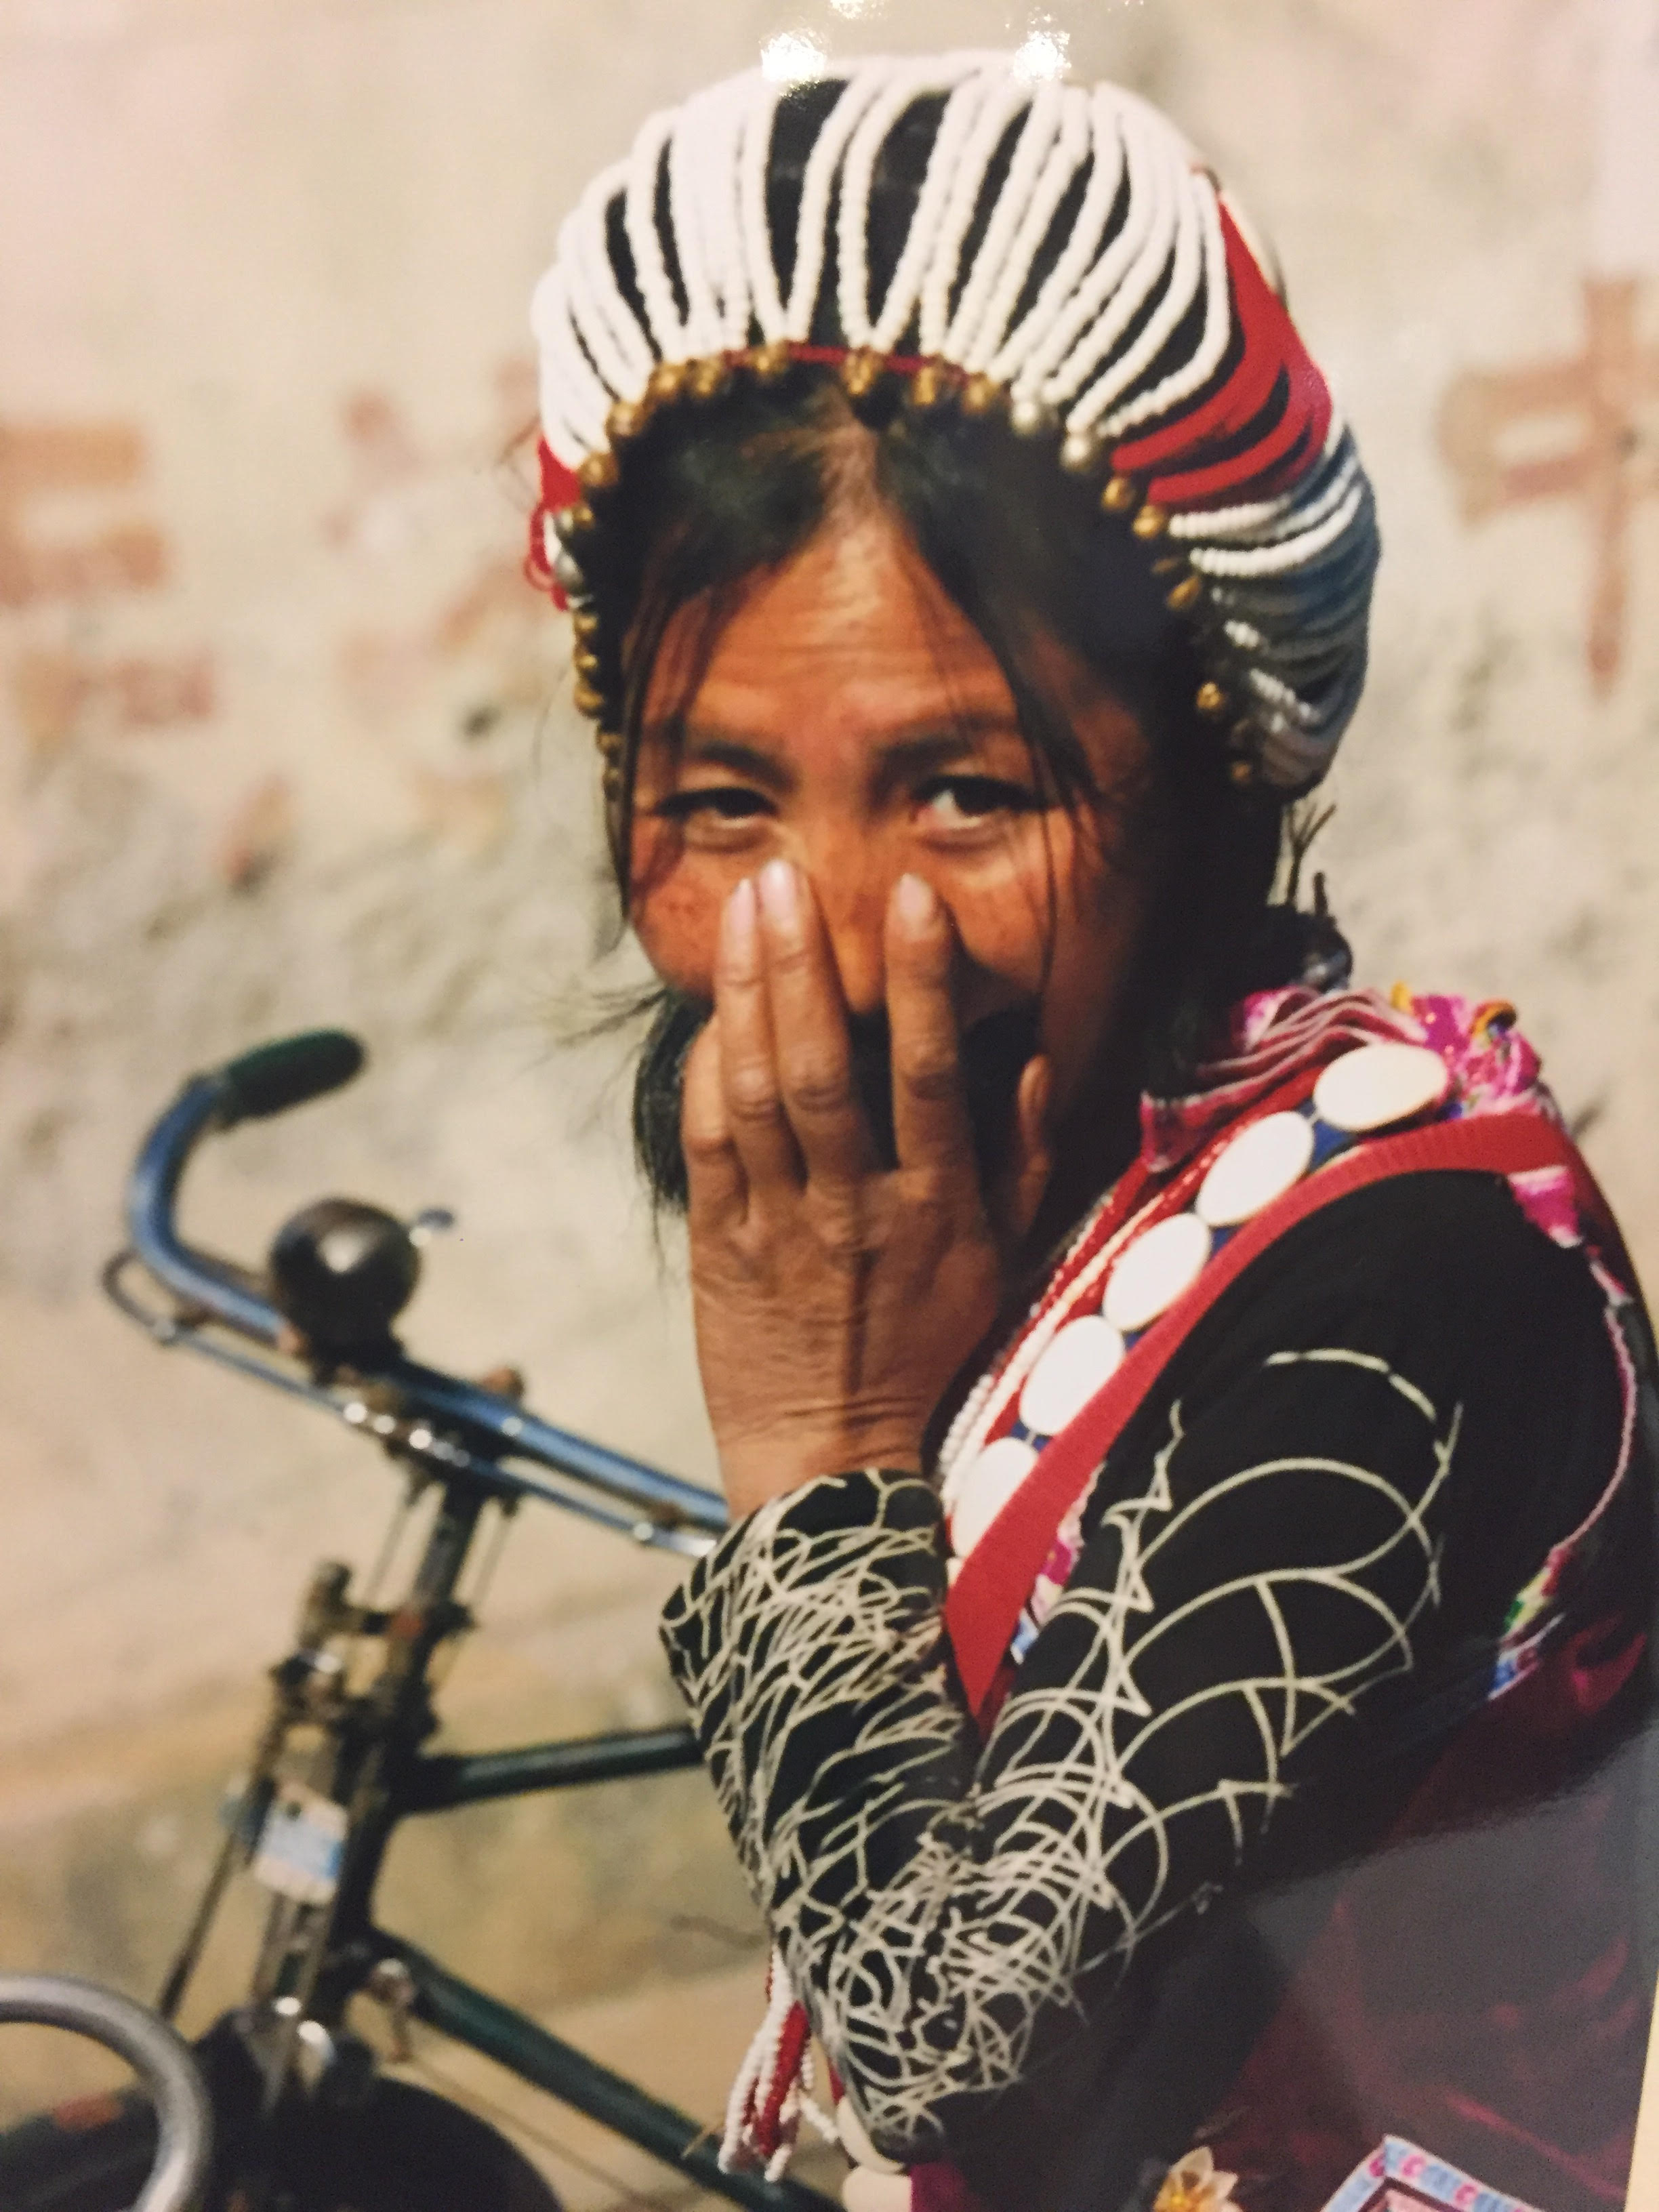 Ethnic woman in yunnan, China (Credit: Green Watershed)